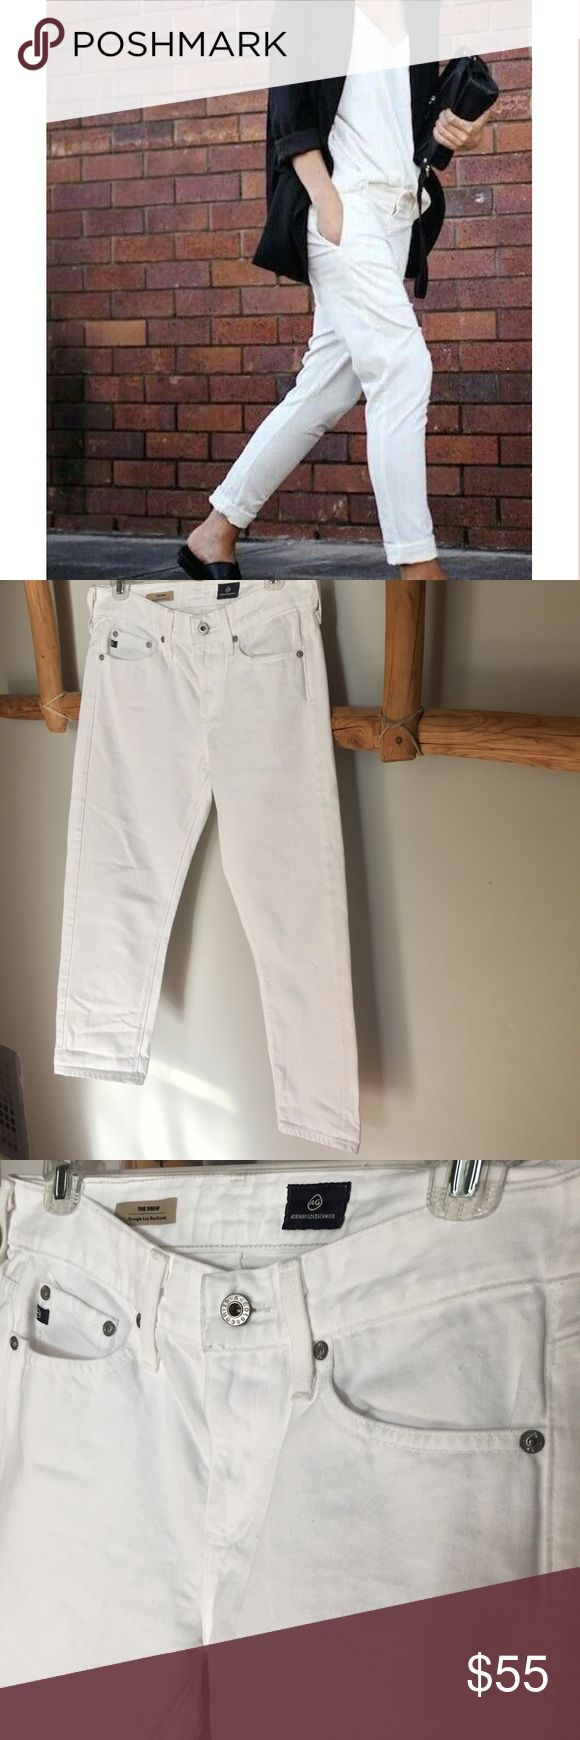 "AG // Straight Leg Boyfriend White Jeans These relaxed boyfriend fit jeans are the perfect run around town casual cropped pant. They are on the shorter side for the length, and run a big as they are meant to be baggy. Looks dynamite cuffed with a moto boot, wedge, or just about any shoe to complete the look of this jean. 26"" unrolled inseam; 14"" leg opening; 10 1/2"" front rise; 14"" back rise  Zip fly with button closure. Five-pocket style. 81% cotton, 19% lyocell. AG Adriano Goldschmied…"